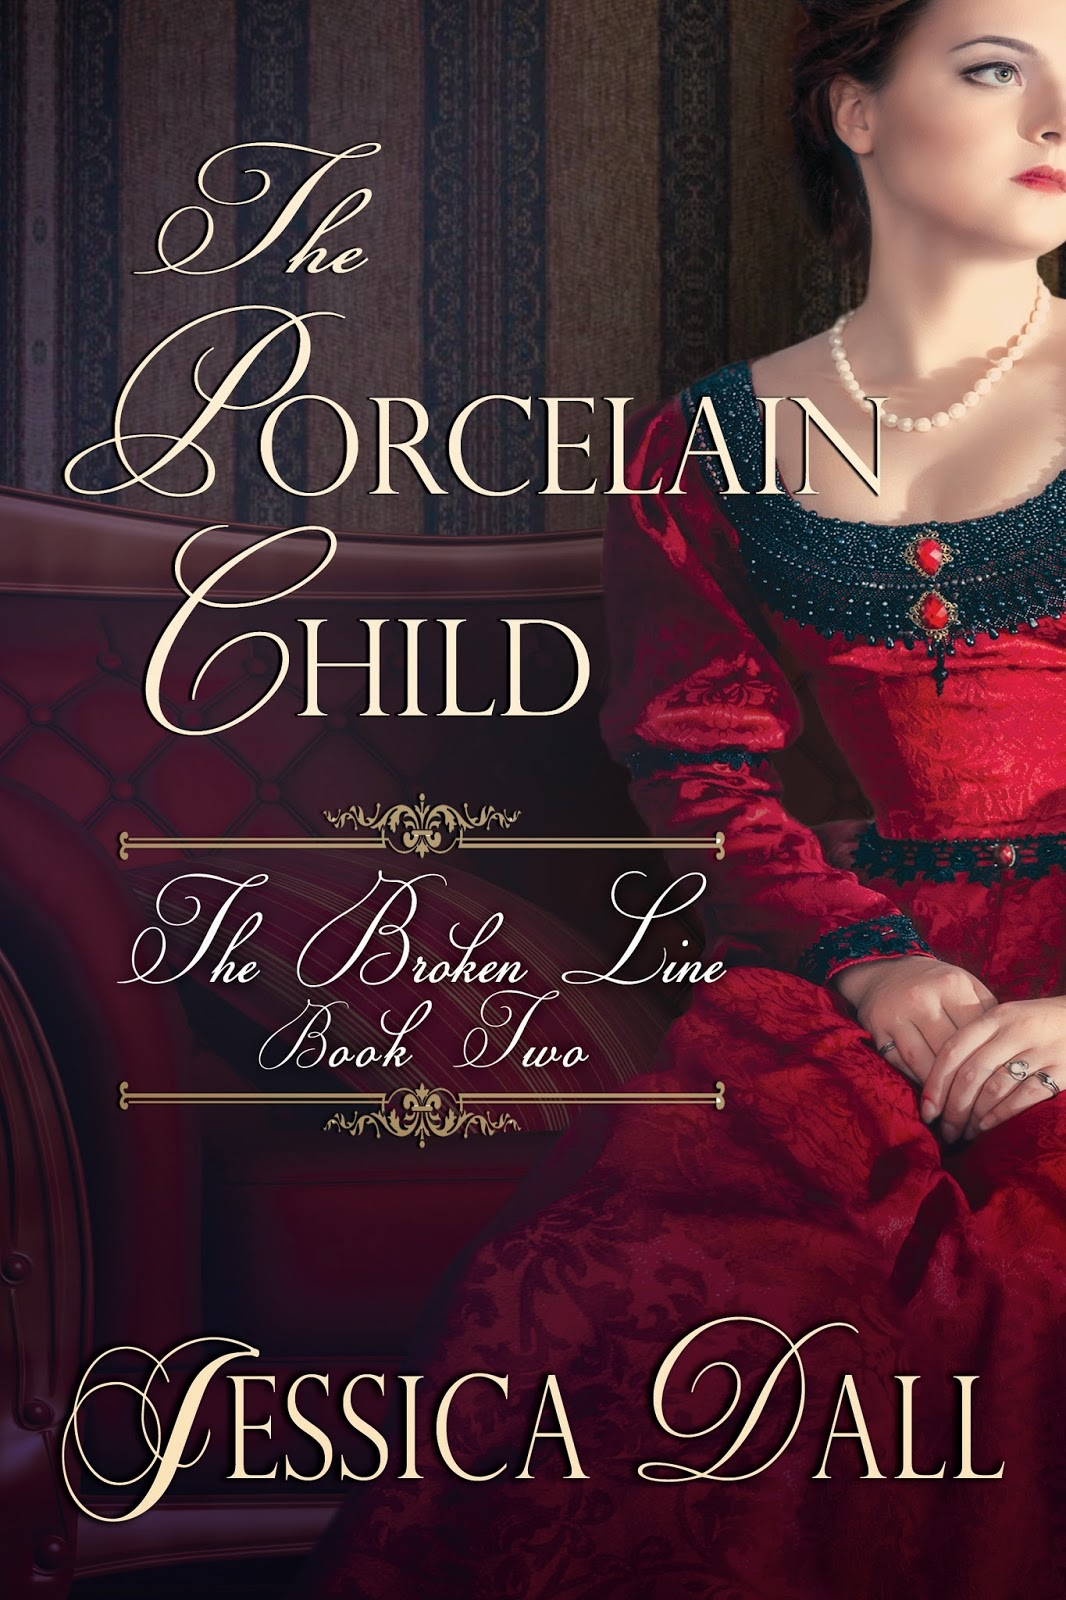 Review – The Porcelain Child by Jessica Dall